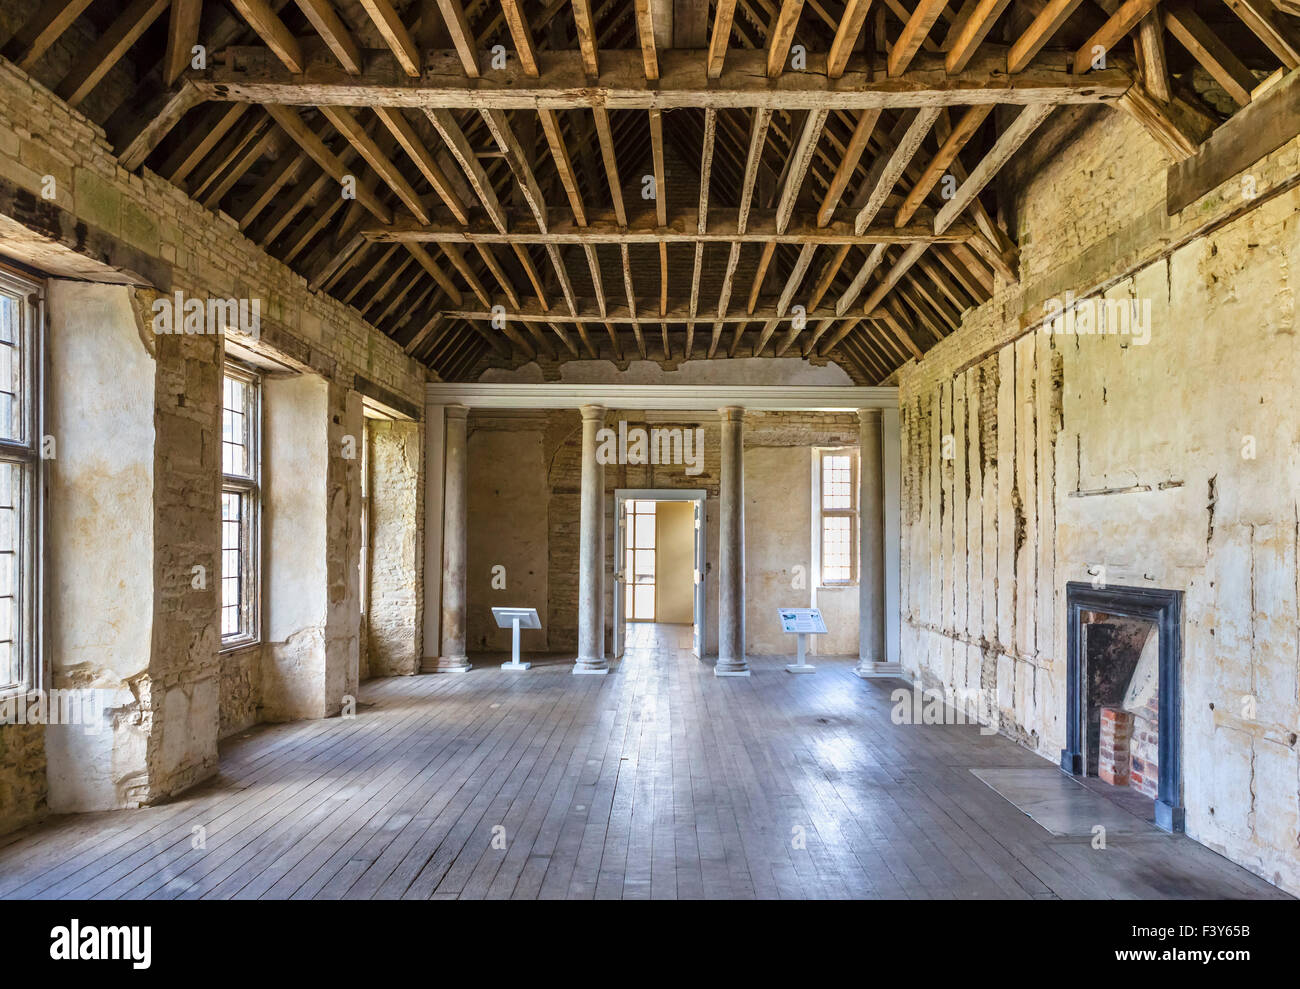 Columned Room or Great Chamber, undergoing renovation in Kirby Hall, a 16thC Elizabethan country house nr Gretton, - Stock Image